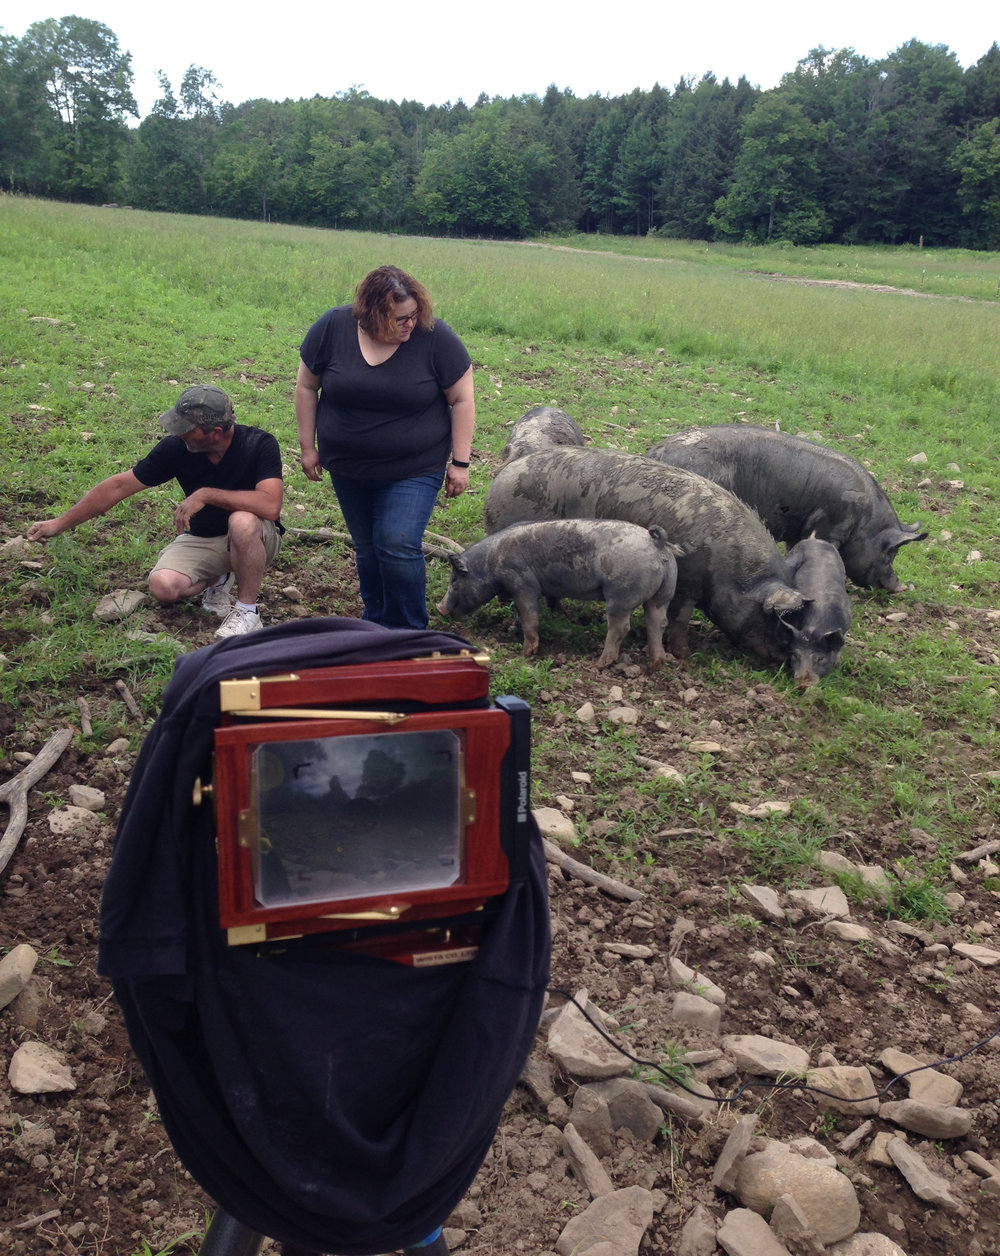 Trying to shoot with a 4x5 at Mulligan Acres Farm.  This was too slow for photographing pigs.  After this shoot, I switched to a medium format Mamiya camera.